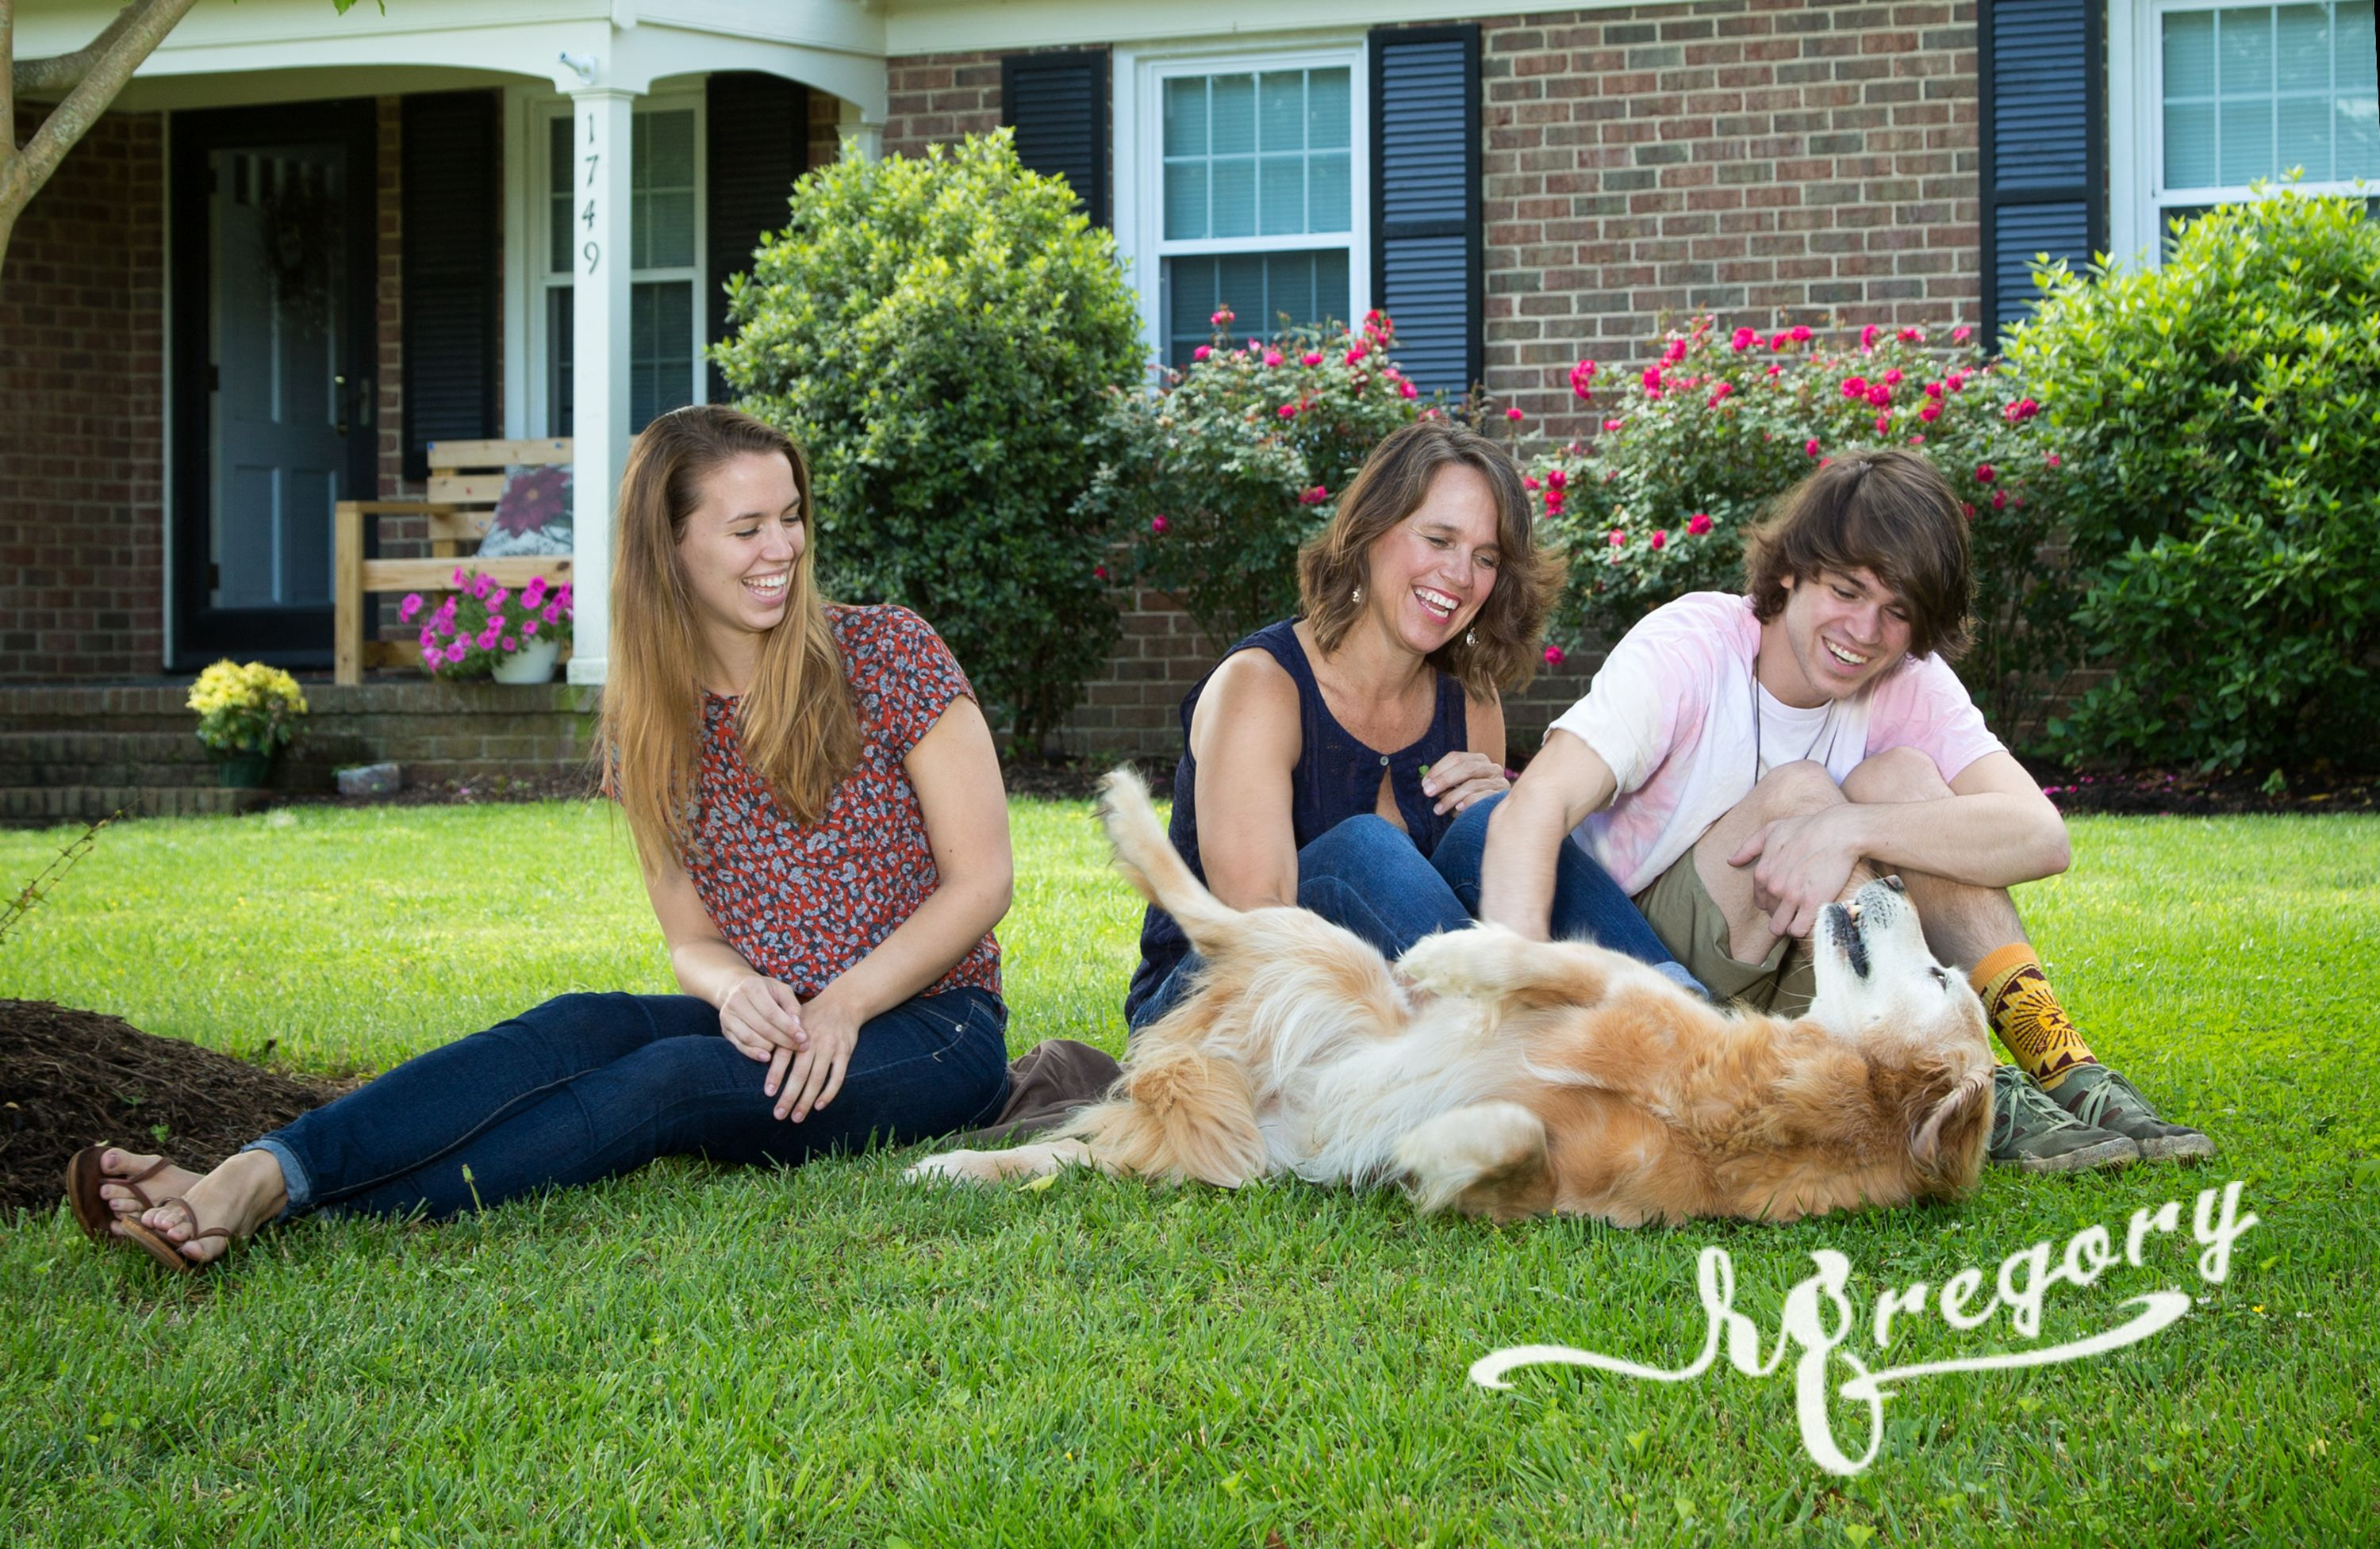 Parcells candid family shot on front lawn with pet dog